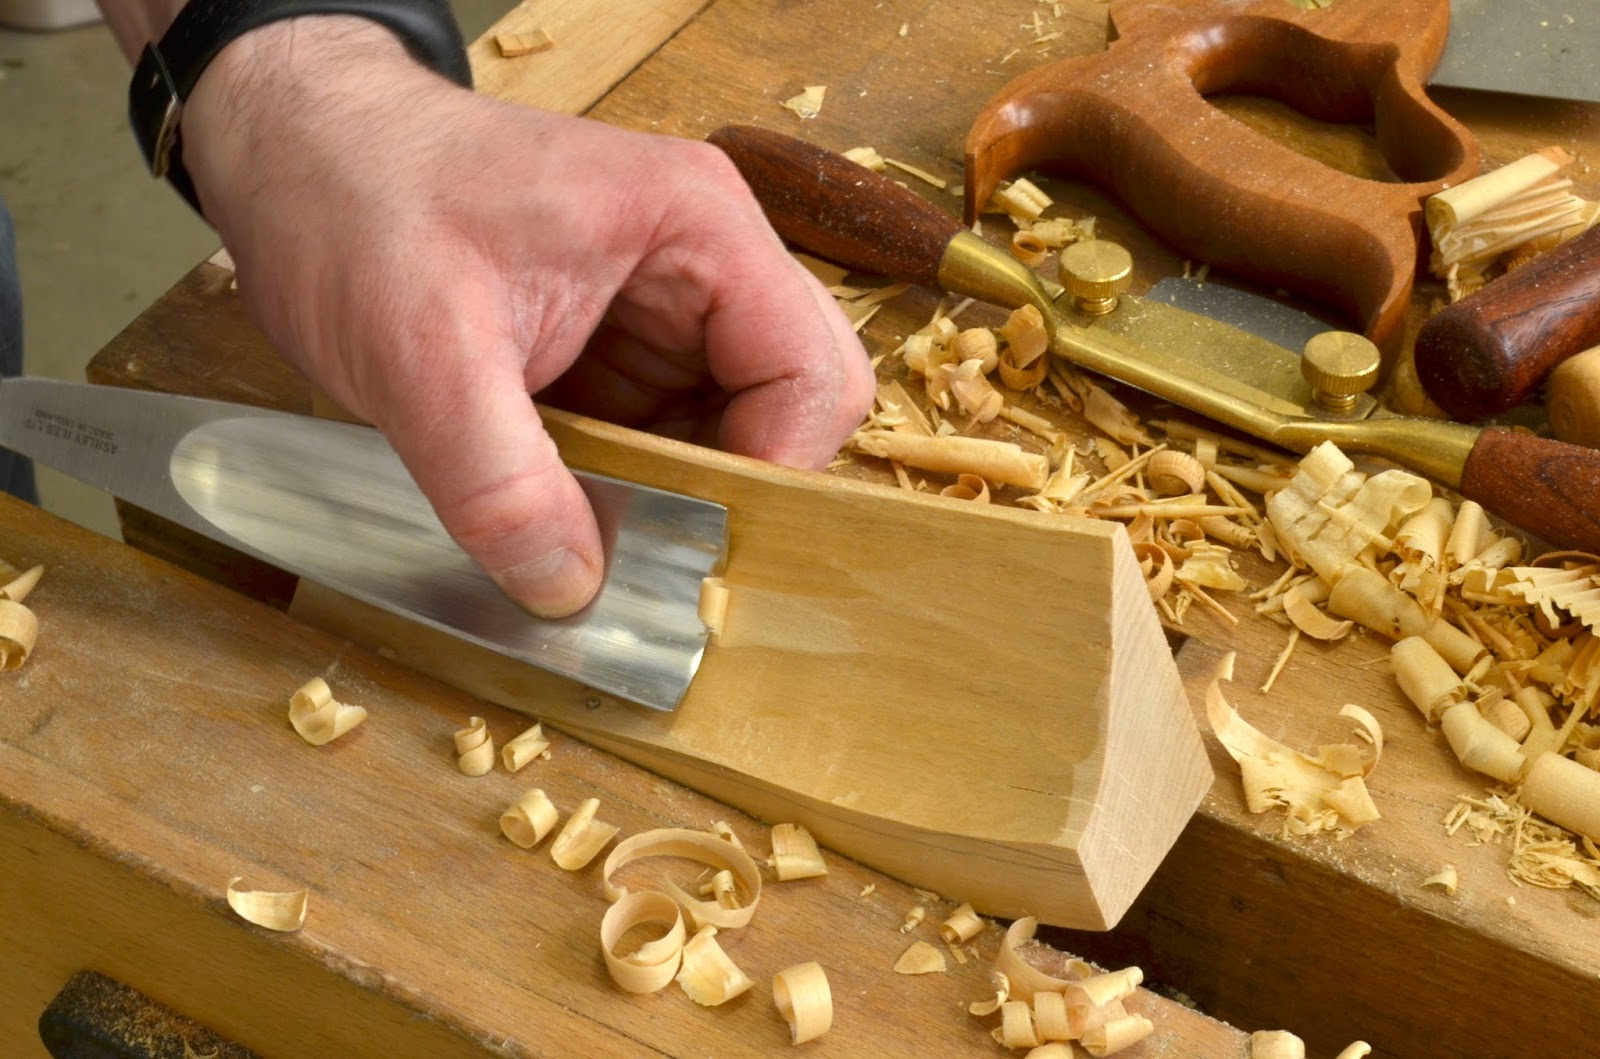 Carving curved edge